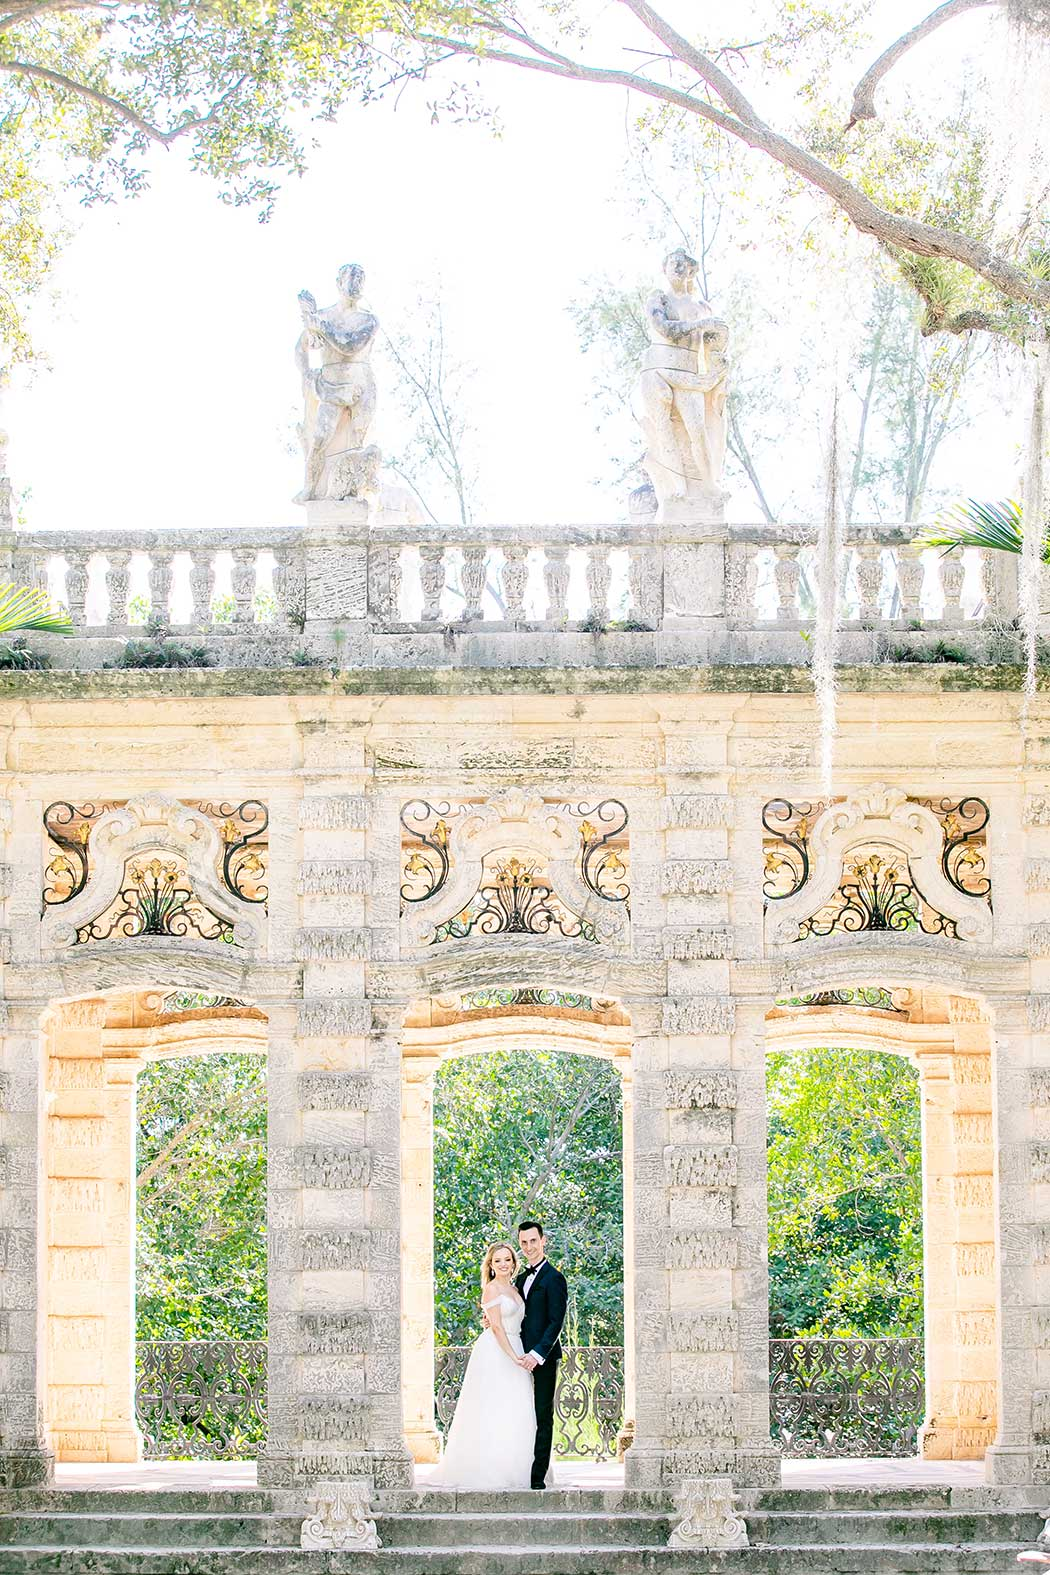 vizcaya museum + gardens engagement photography session | couple pose in vizcaya gardens for photoshoot | vizcaya museum engagement photos